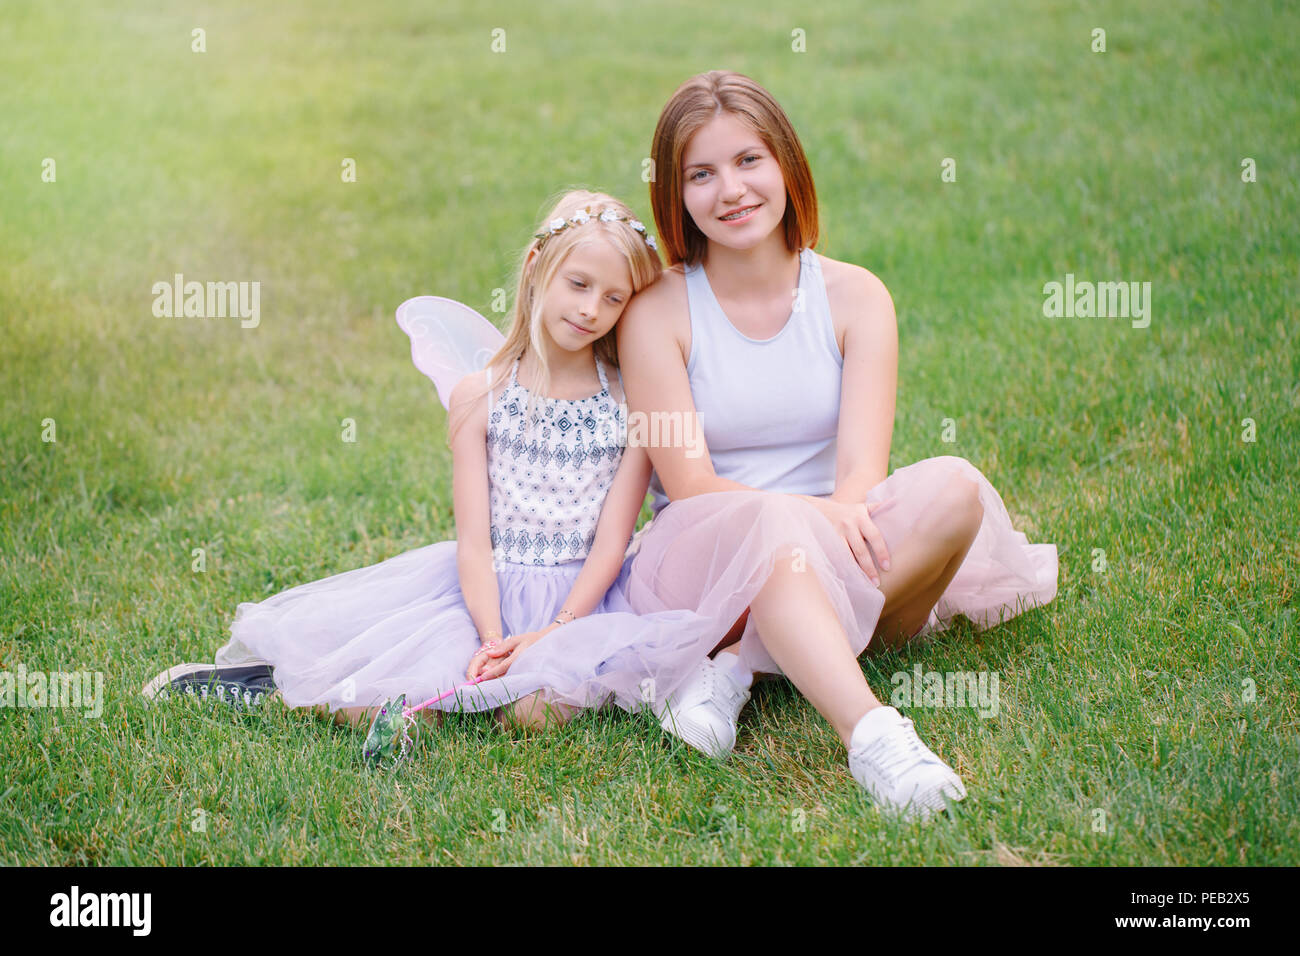 7713c98c2c Portrait of two smiling funny Caucasian girls sisters wearing pink tutu  tulle skirts in park forest